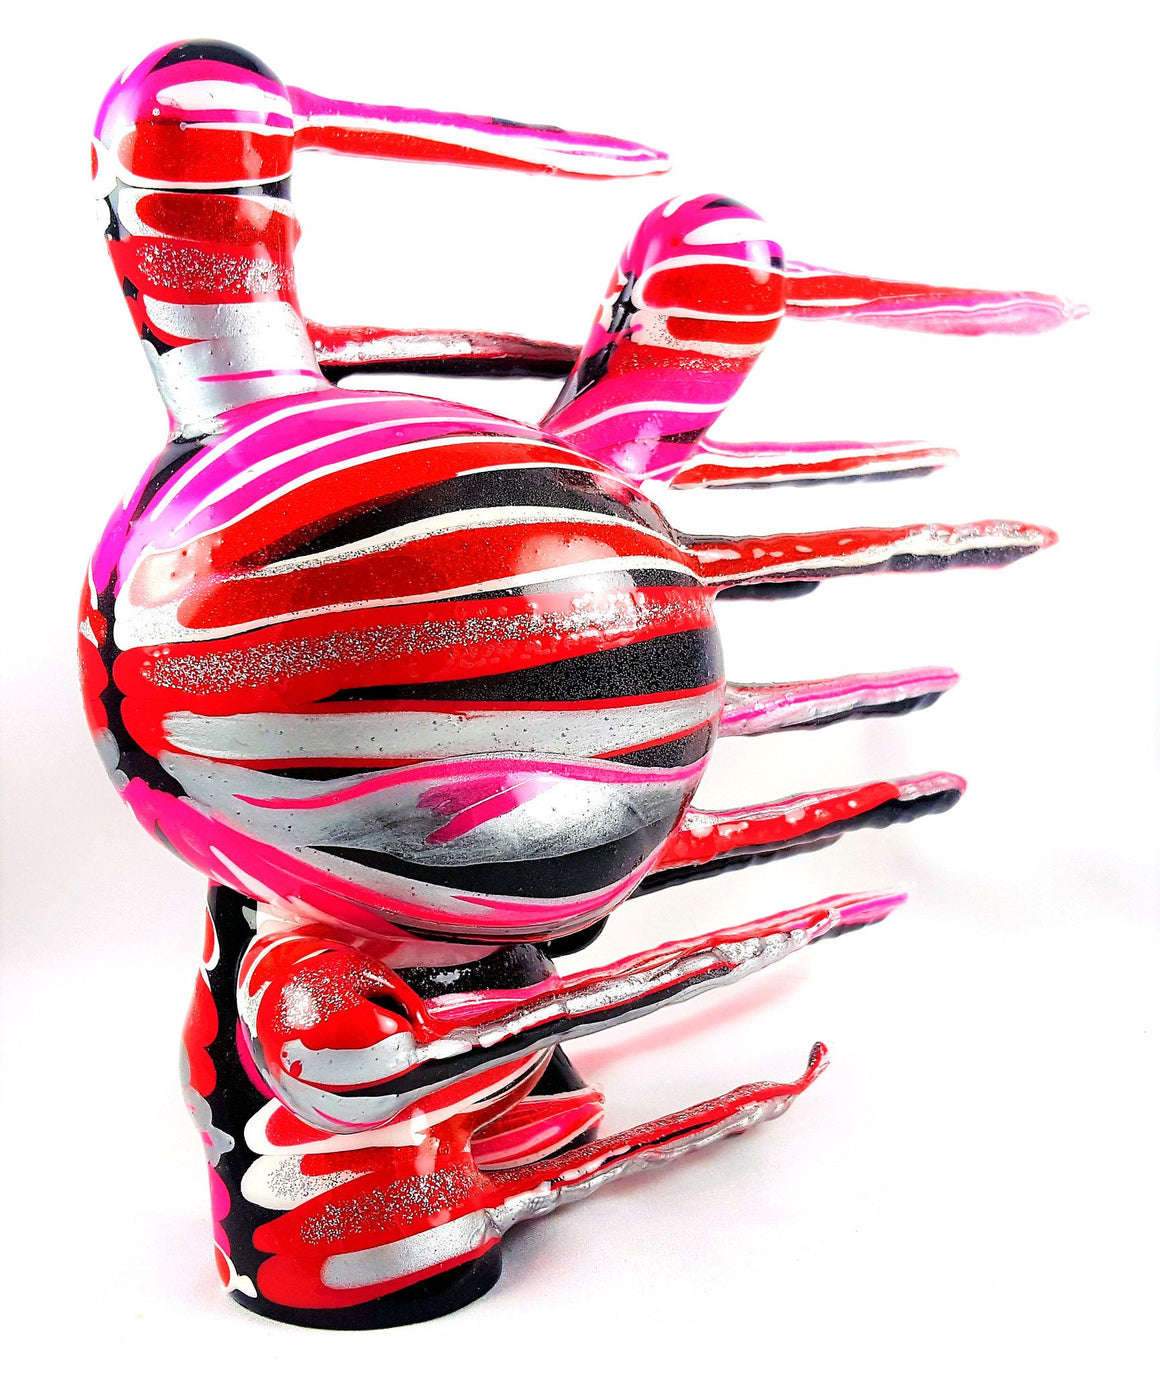 "Resin - Blown Away ""Valentines"" Custom 8"" Dunny By Josh Mayhem"